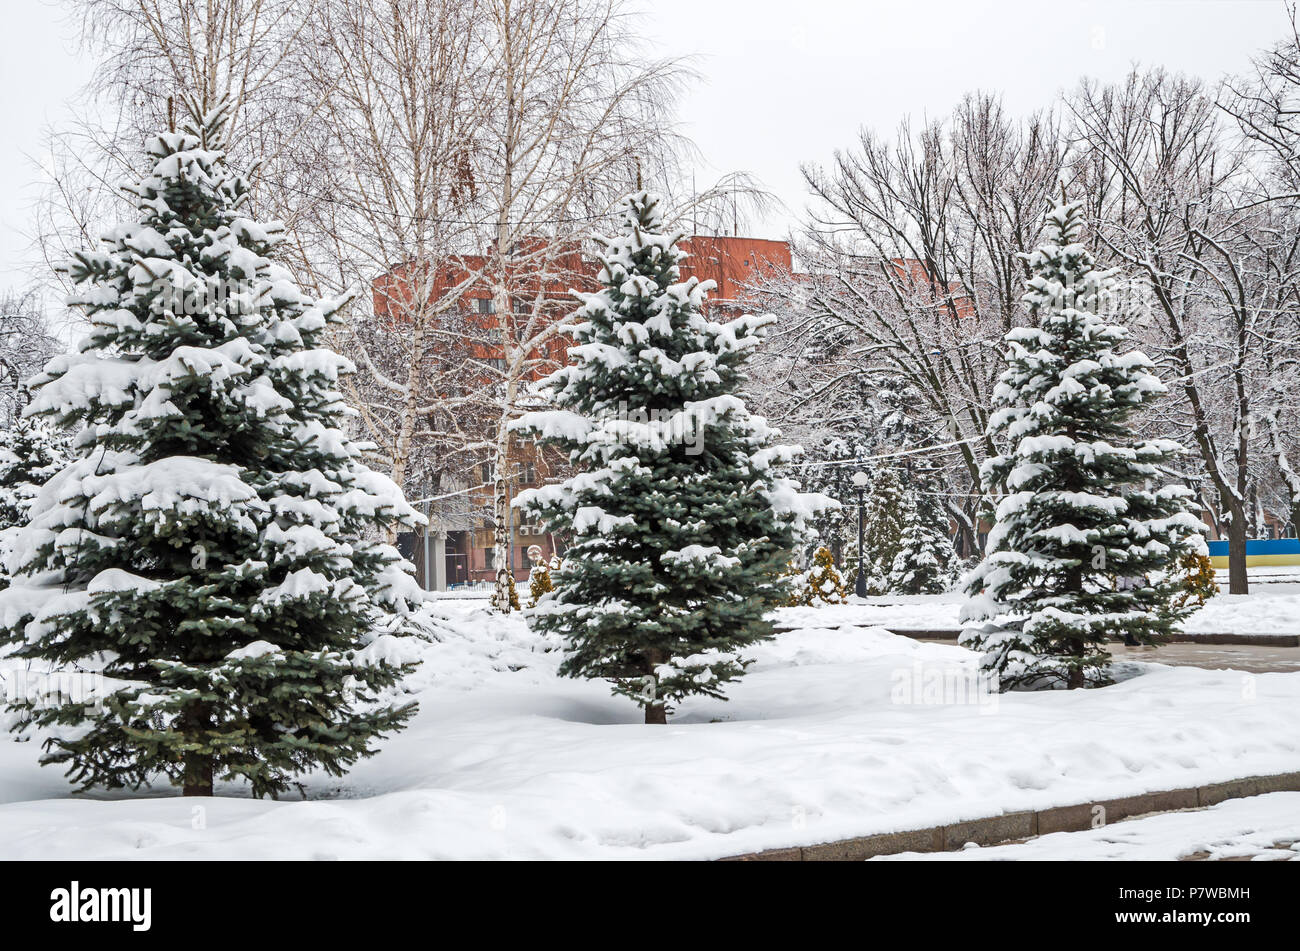 Frosty January snow covered grove of young spruces in the city park on a brick building background - Stock Image